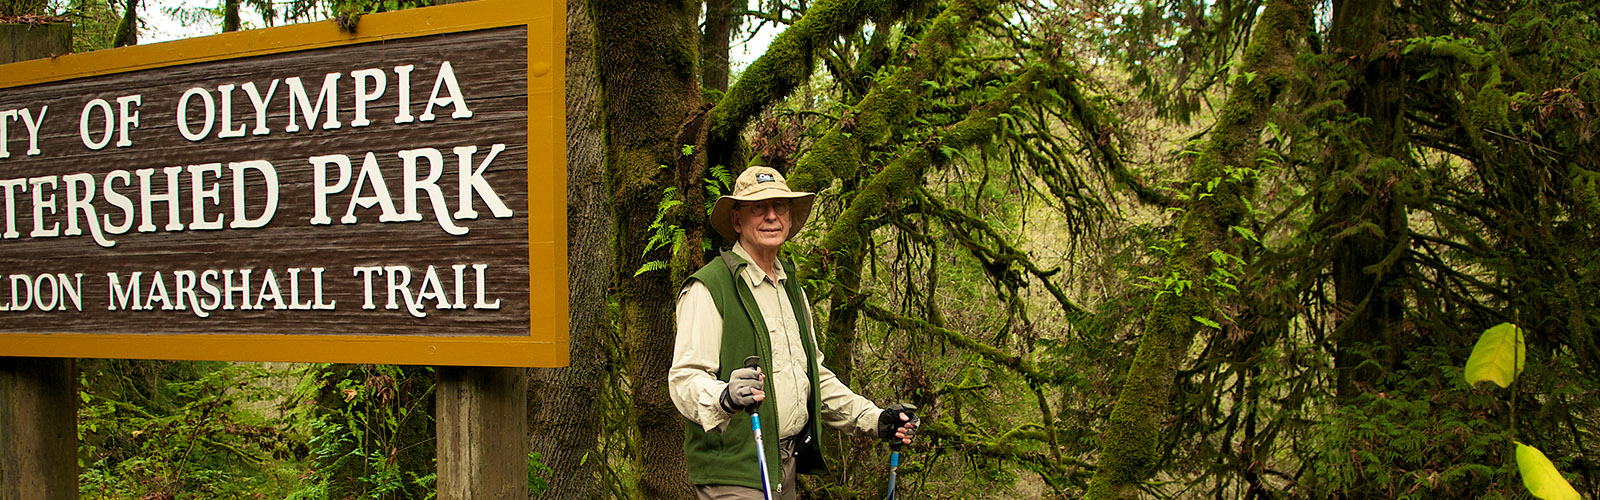 Male hiker standing at entrance of City of Olympia Watershed Park Don Marshall Trai